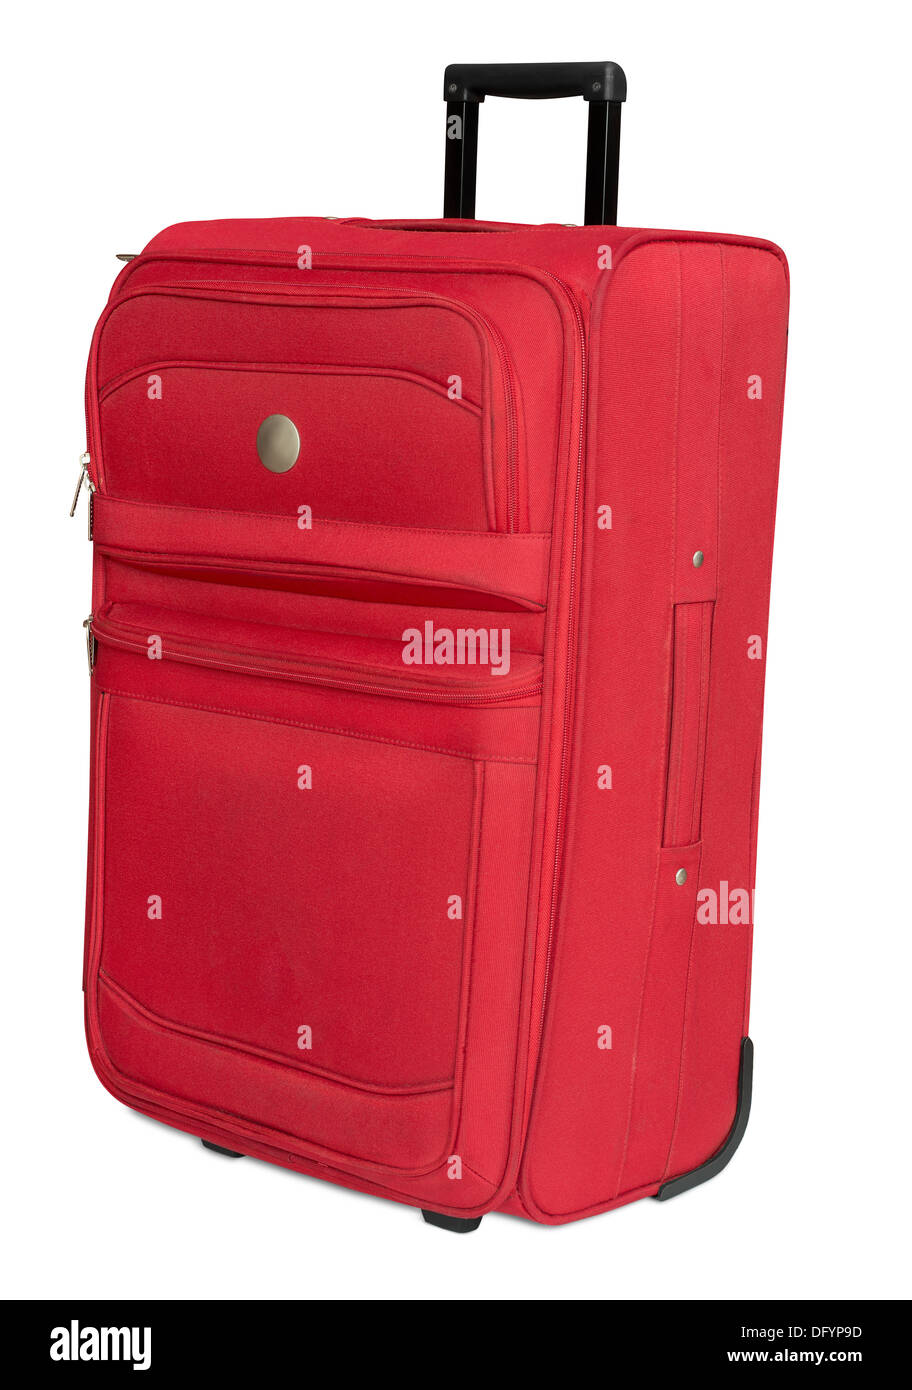 Red textile suitcase isolated on white - Stock Image